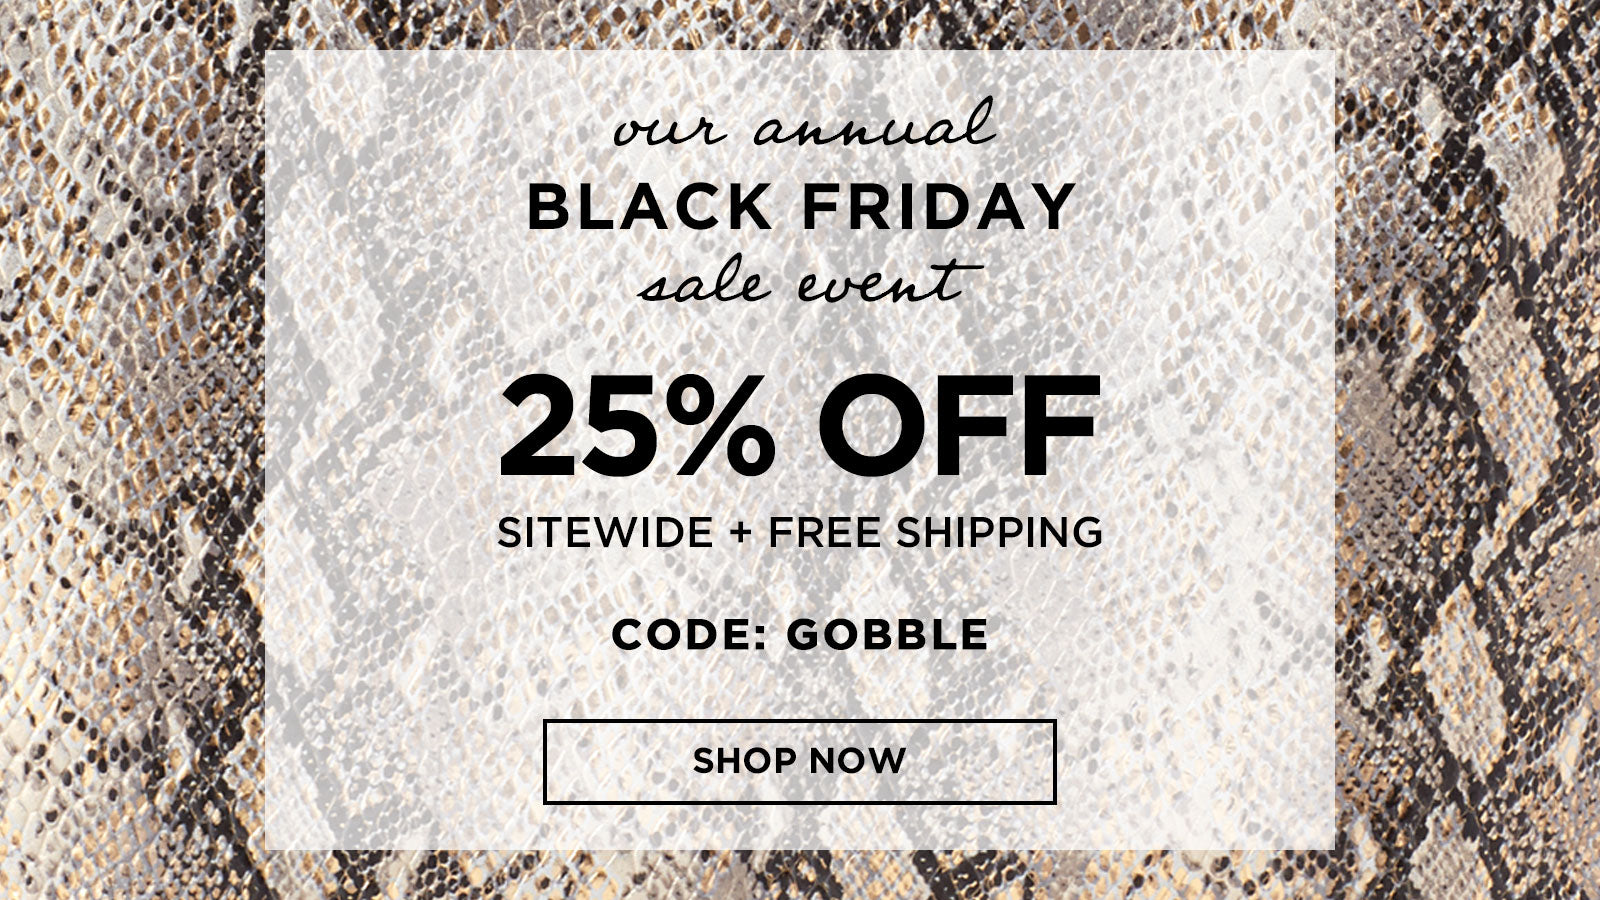 Black Friday - 25% Off Sitewide Sale Happening Now! Code: GOBBLE